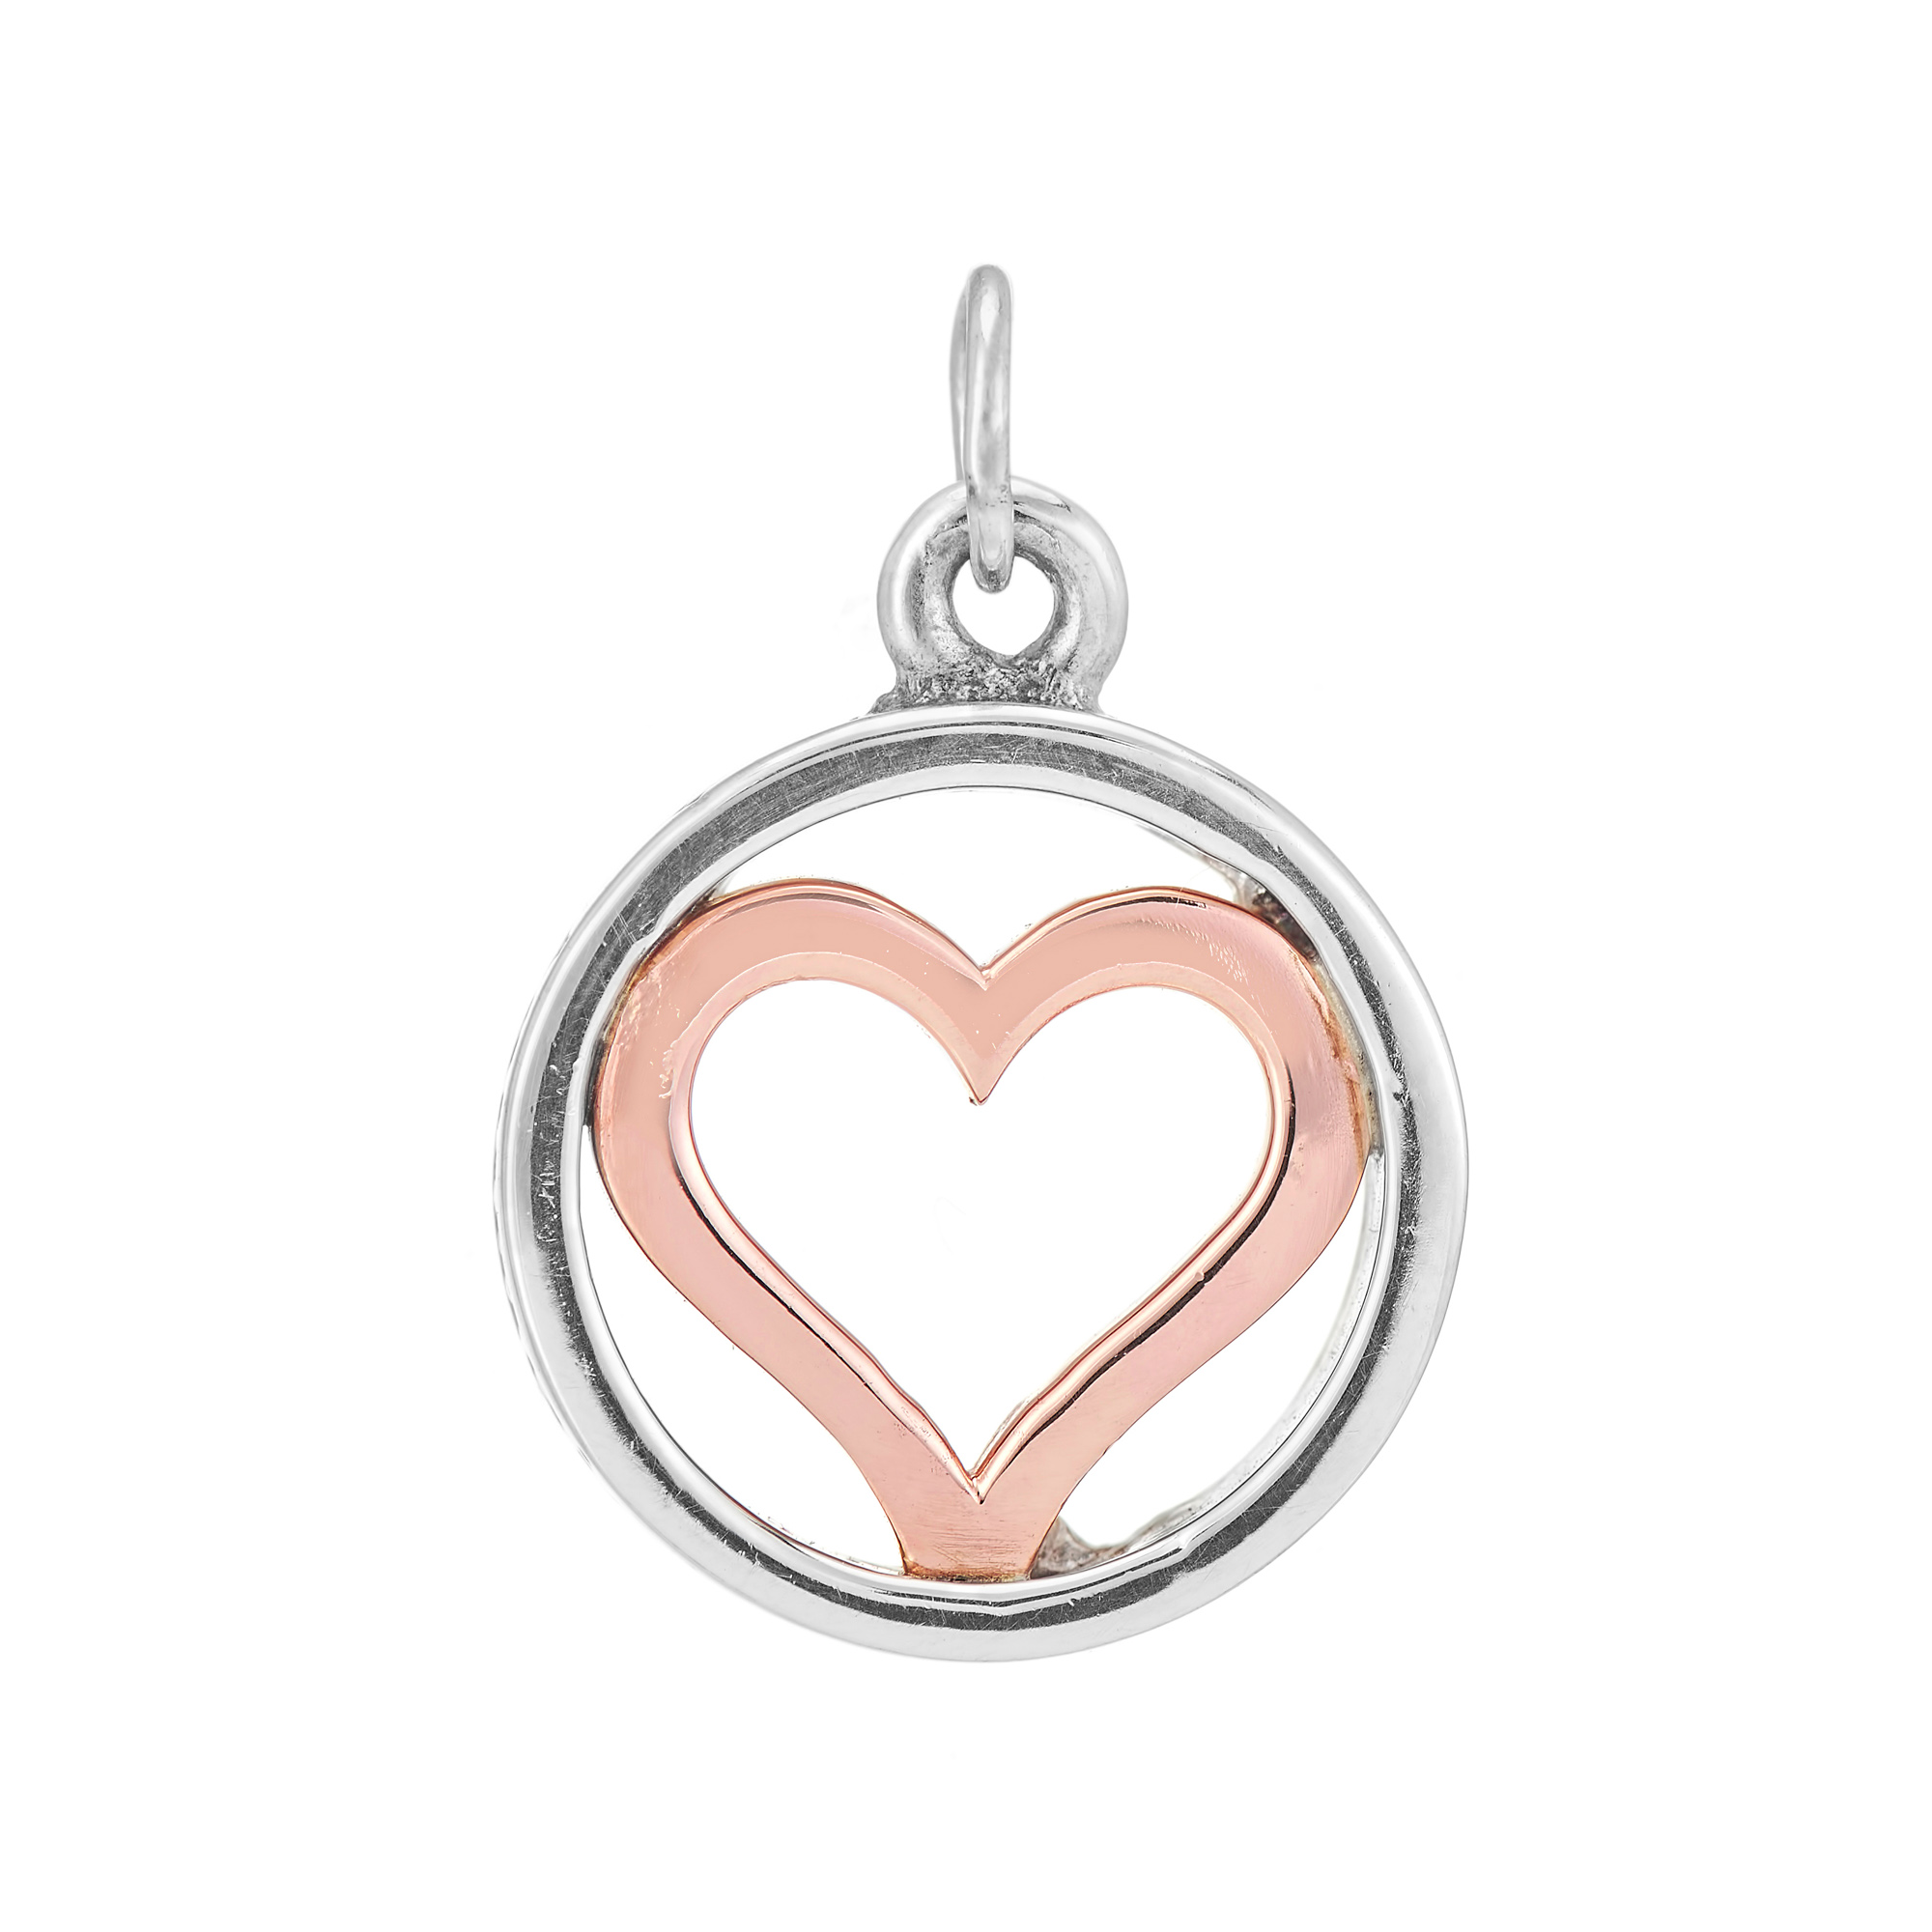 Sterling Silver and 9ct Rose Gold Charm / Pendant (Forever in my heart)